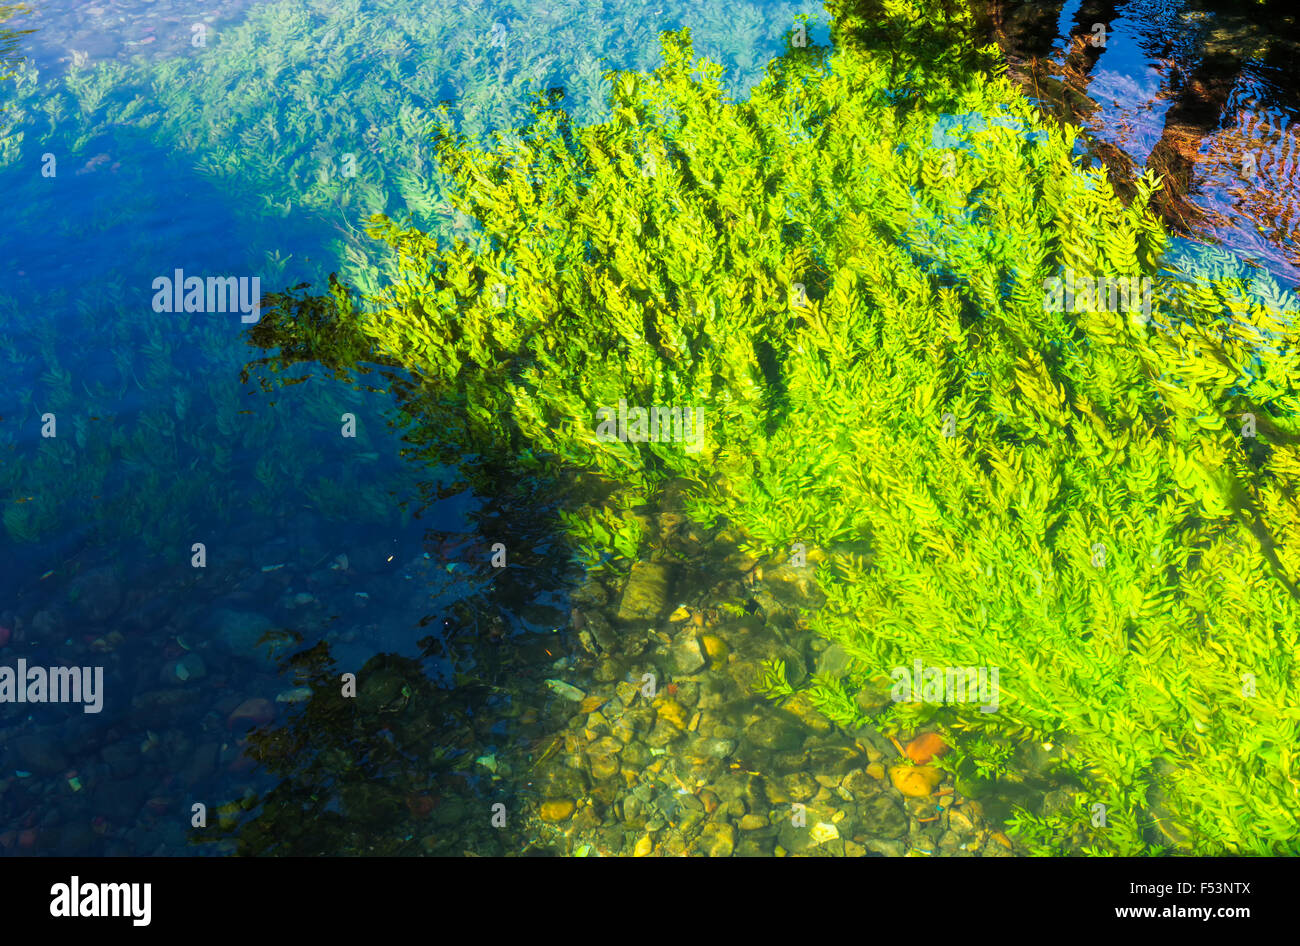 Algae floating in the Sorgue river, L'Isle sur la Sorgue, Vaucluse, Provence Alpes Cote d'Azur region, France - Stock Image